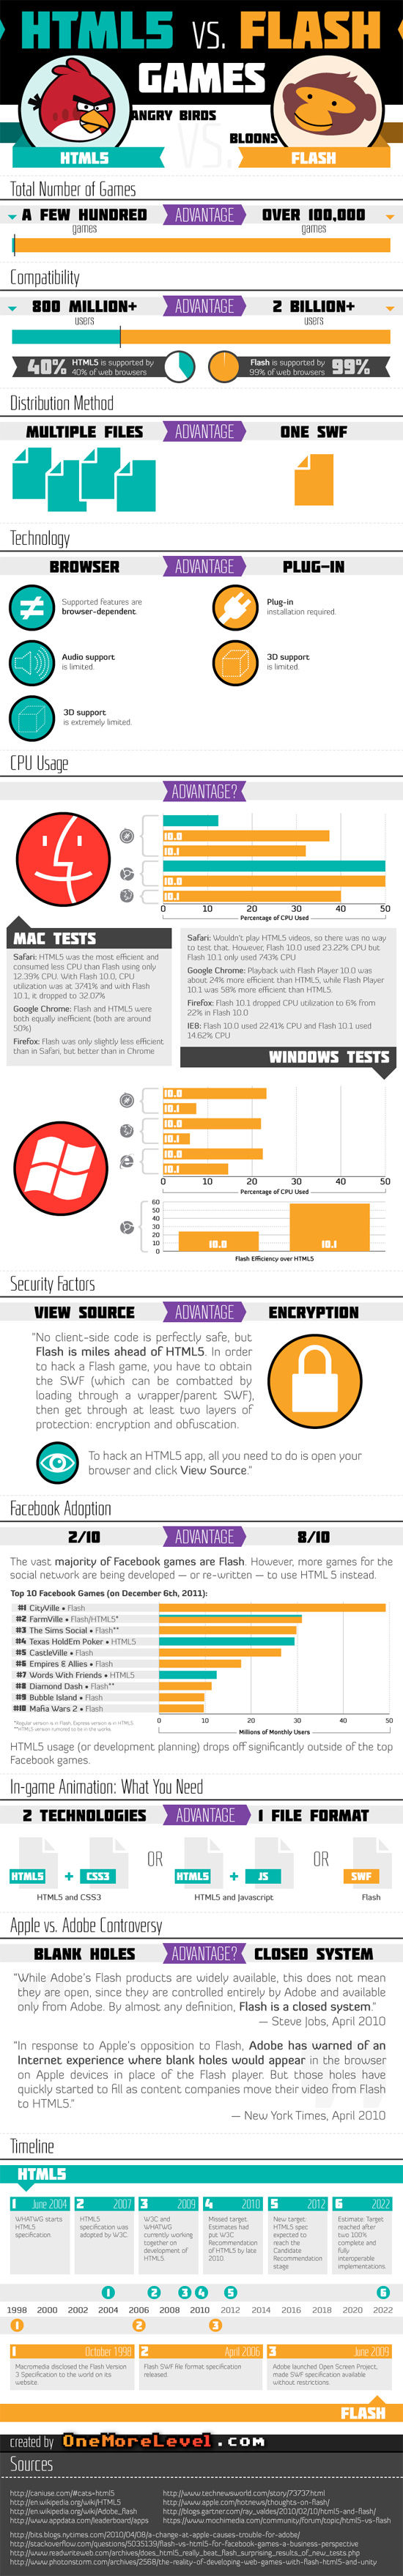 Infographic: HTML5 vs Flash Games